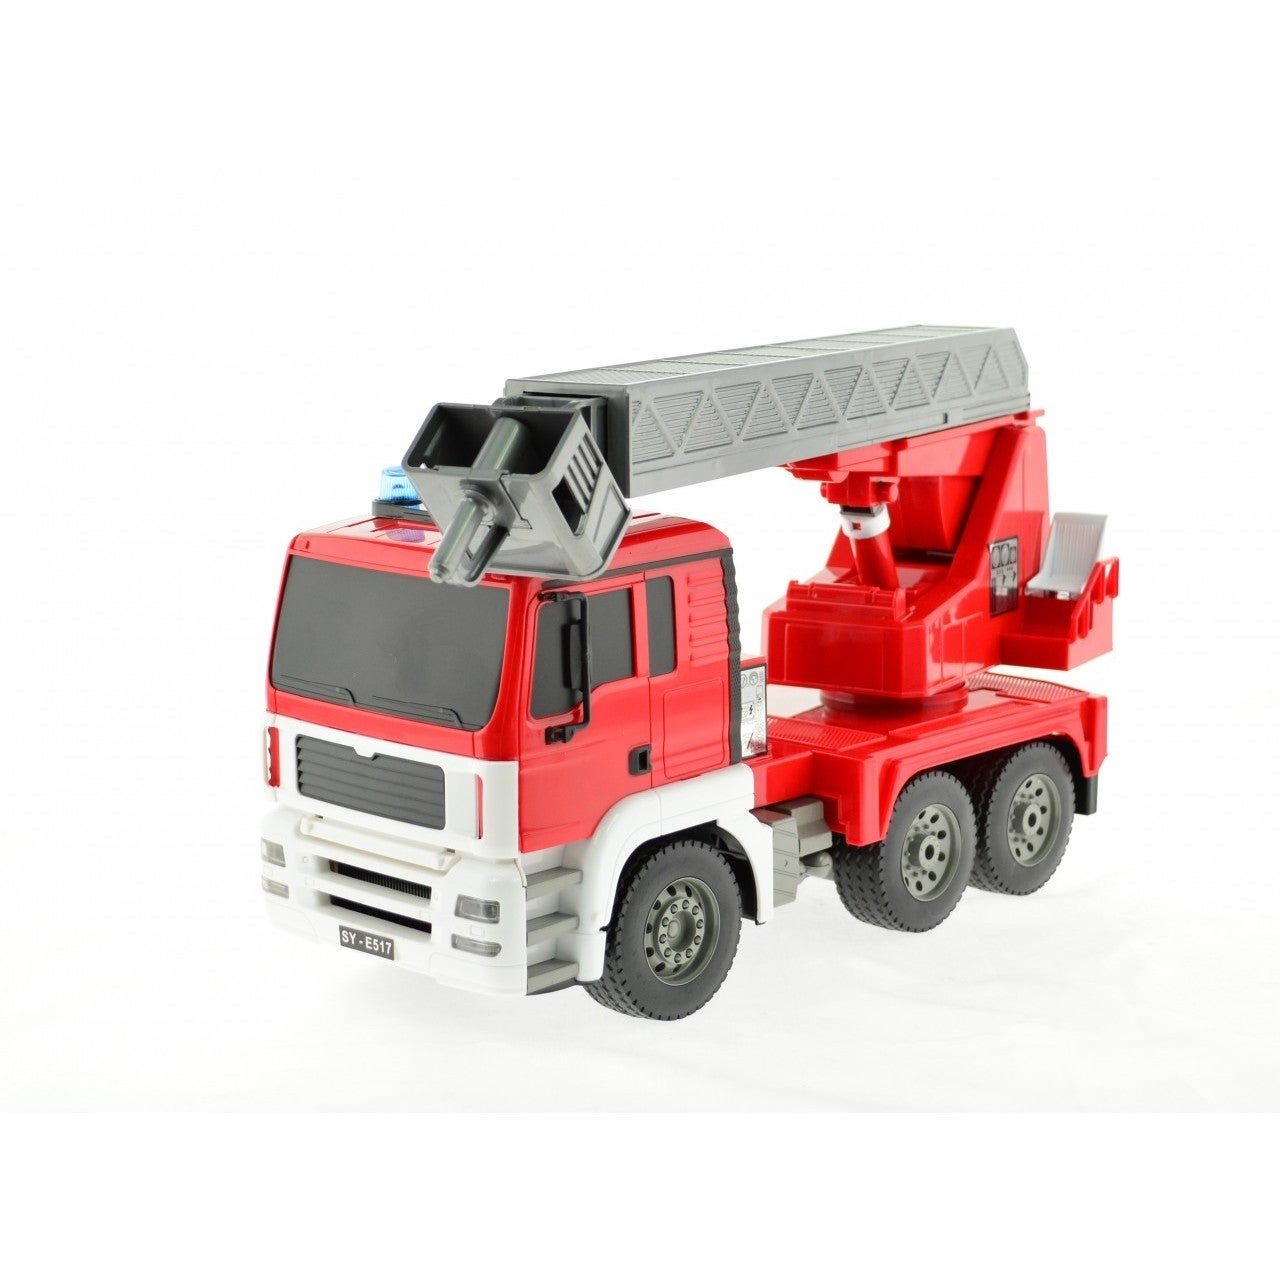 E517-003 1:20 Scale RC Fire Truck with Lights and Sound (...